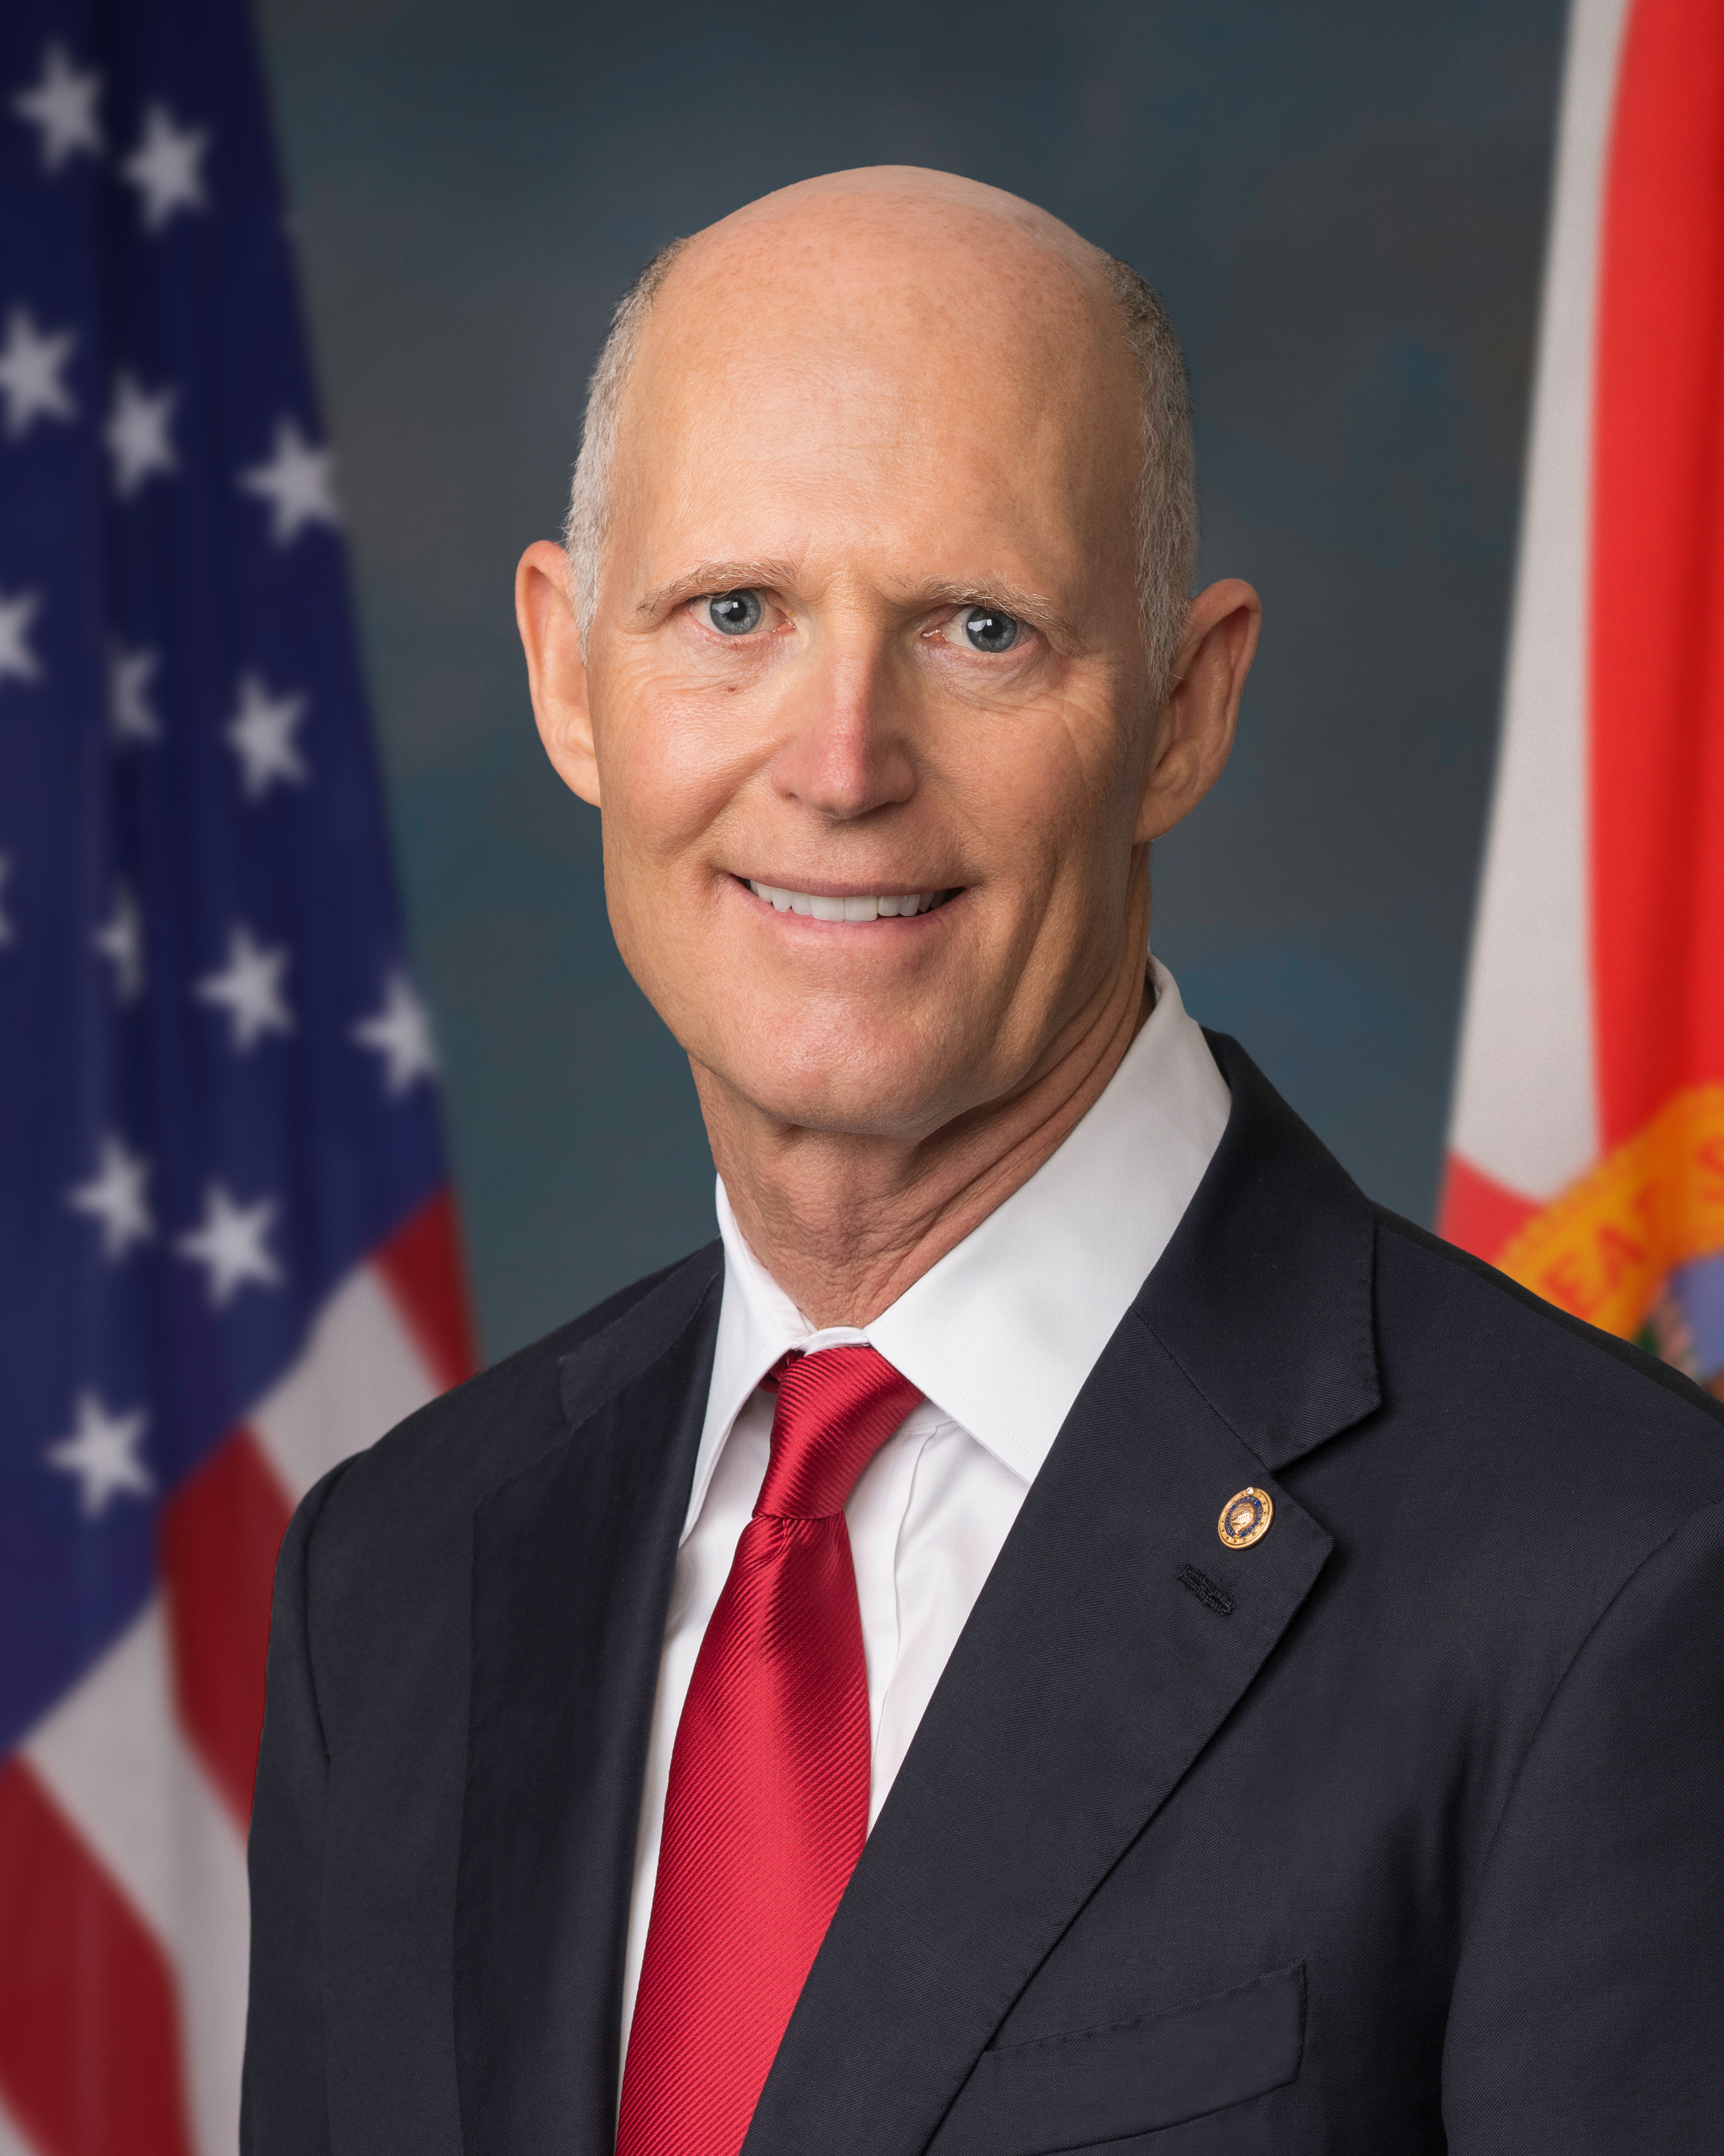 Rick Scott - Wikipedia